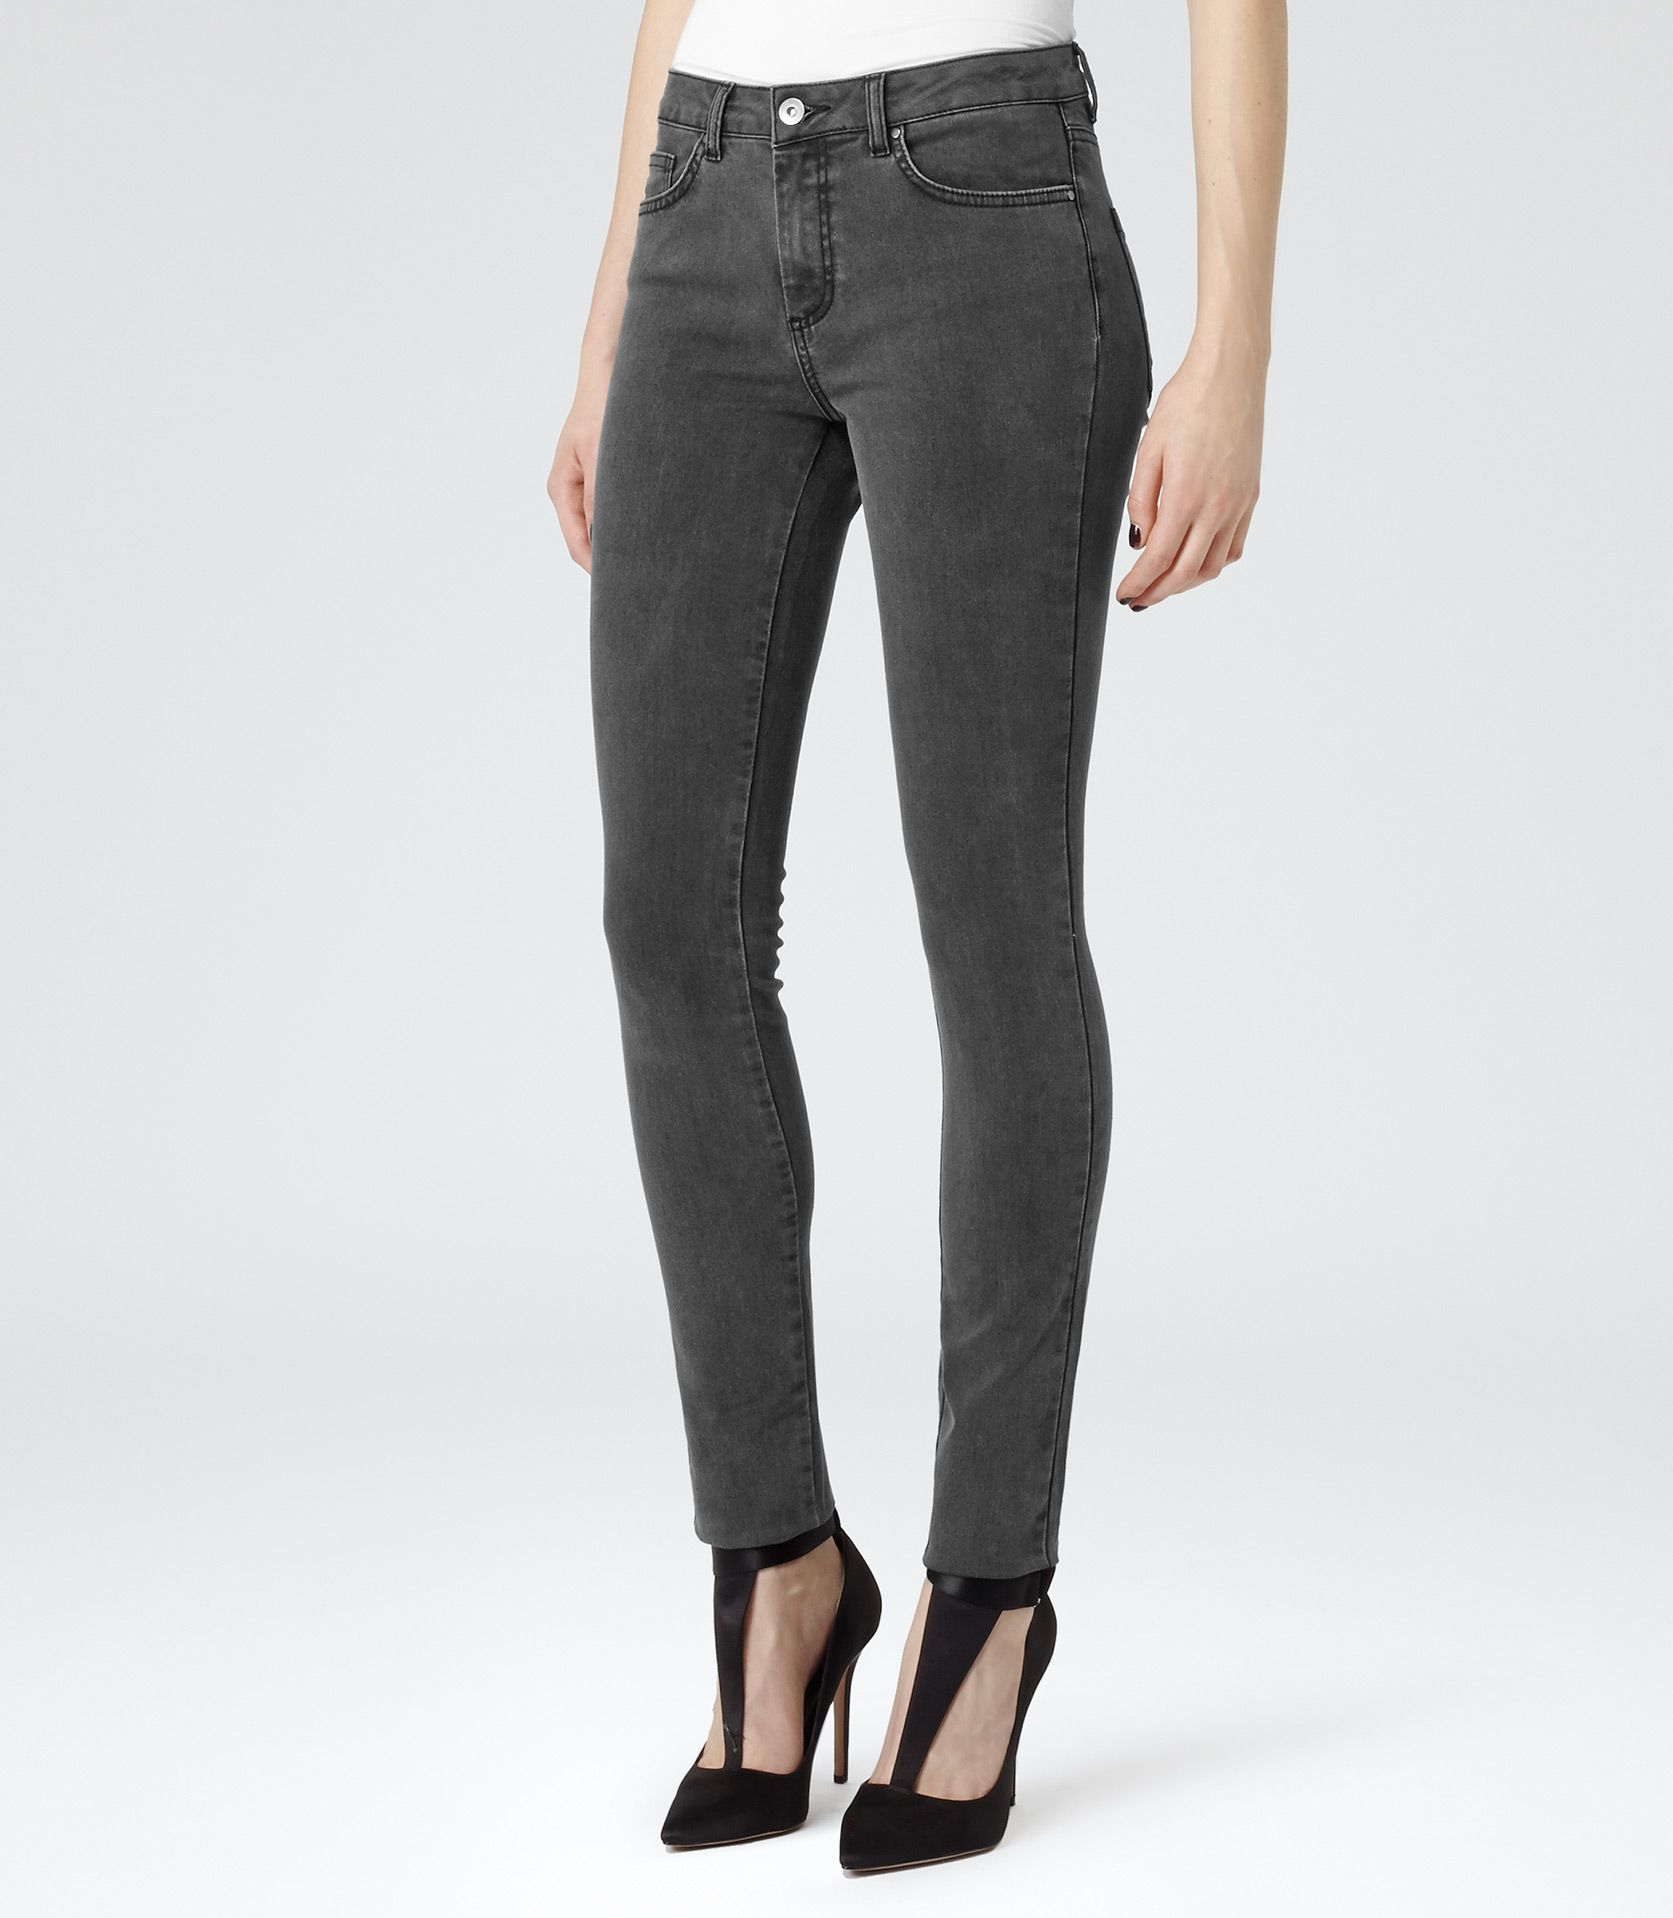 Womens Grey Skinny Jeans Photo Album - Reikian